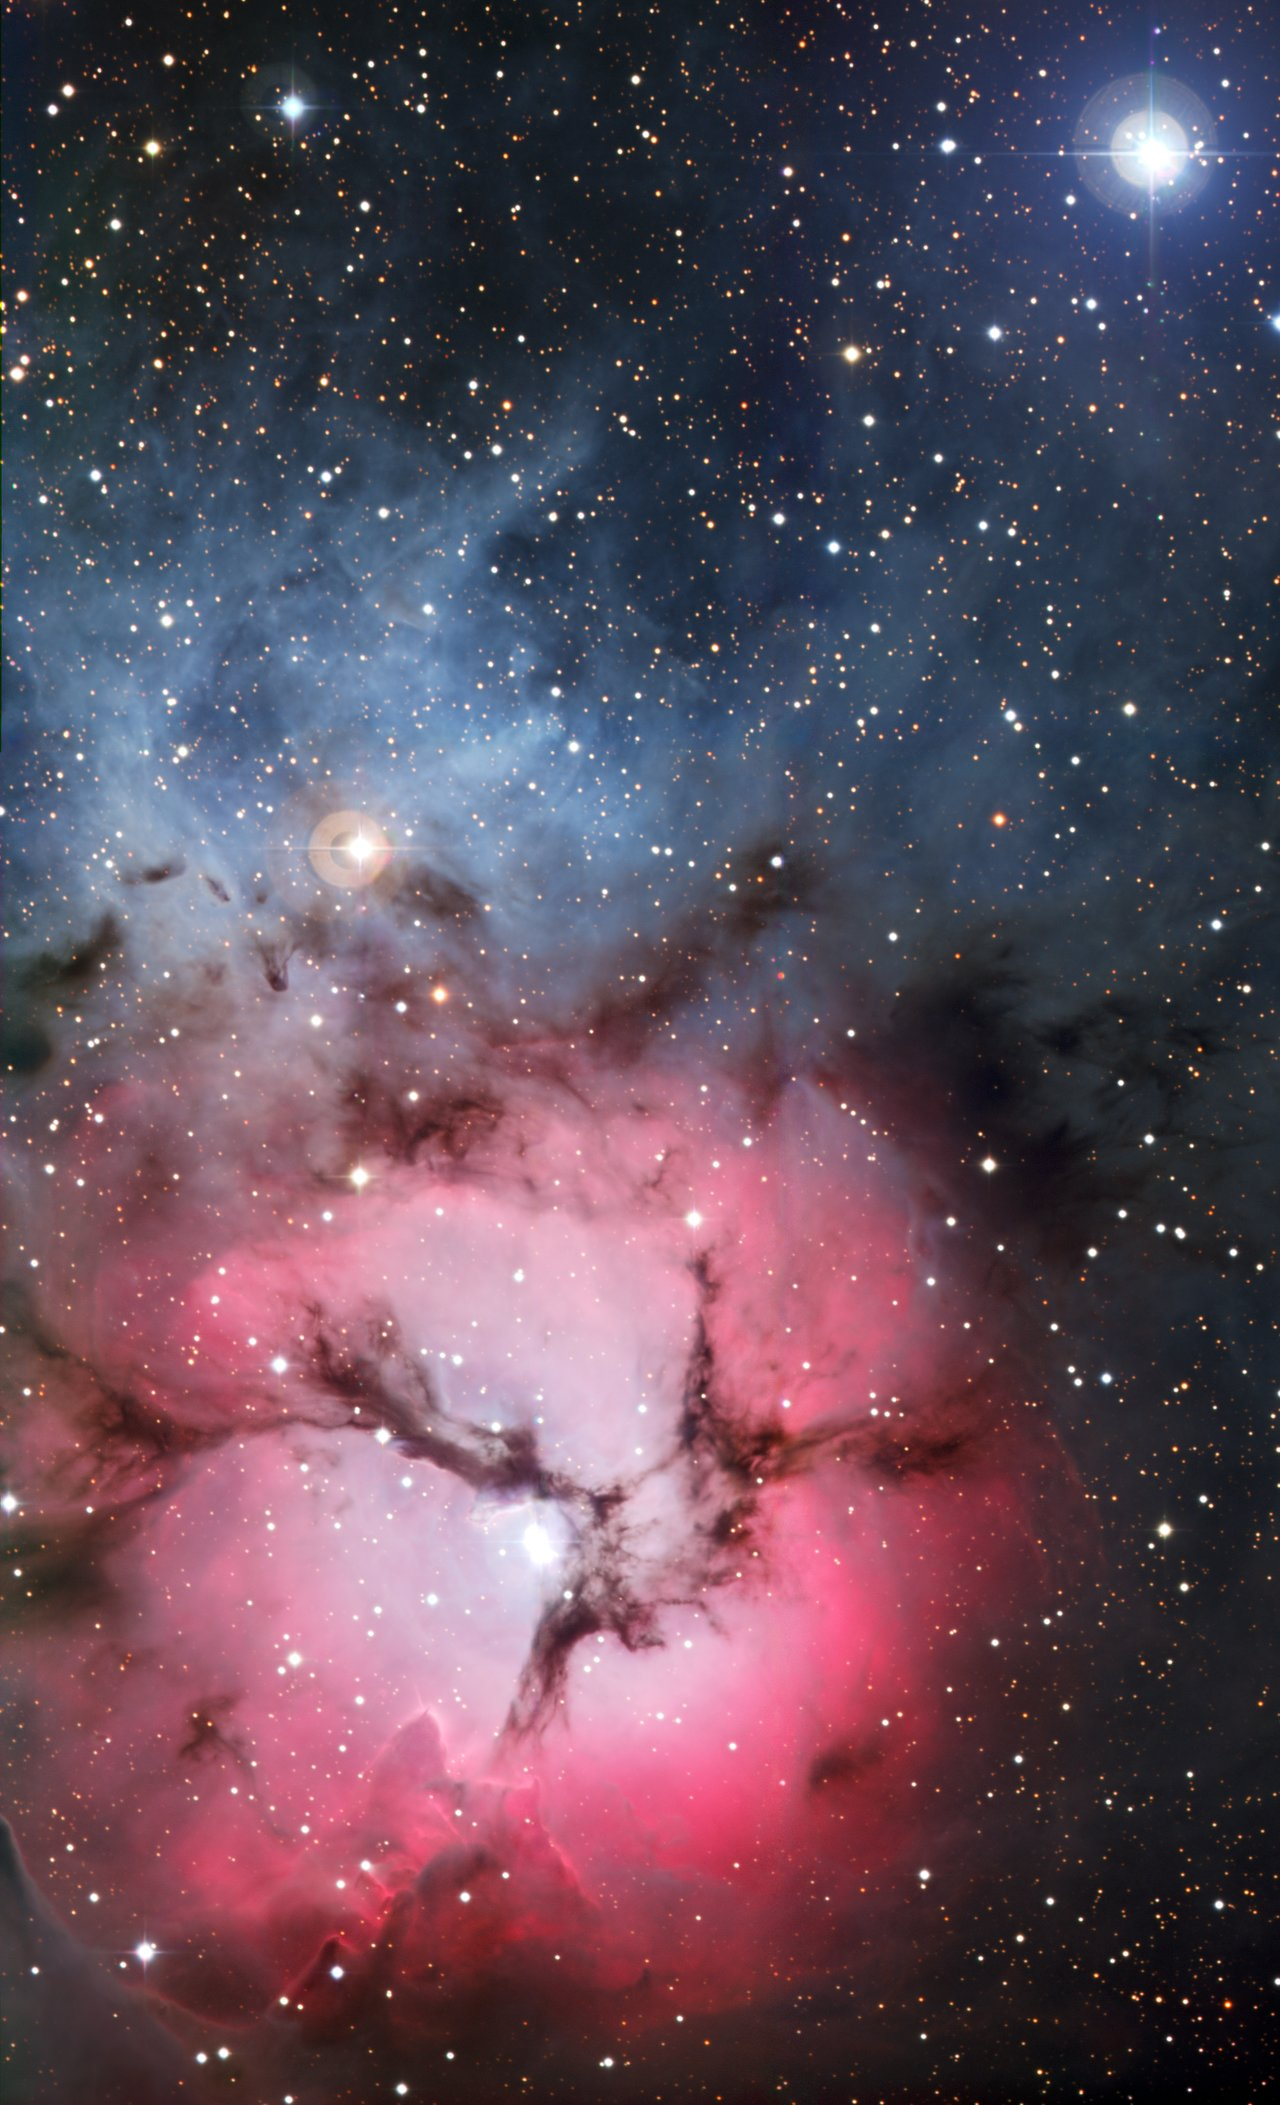 Mounted image 139: Stars are born in the dust-banded Trifid Nebula